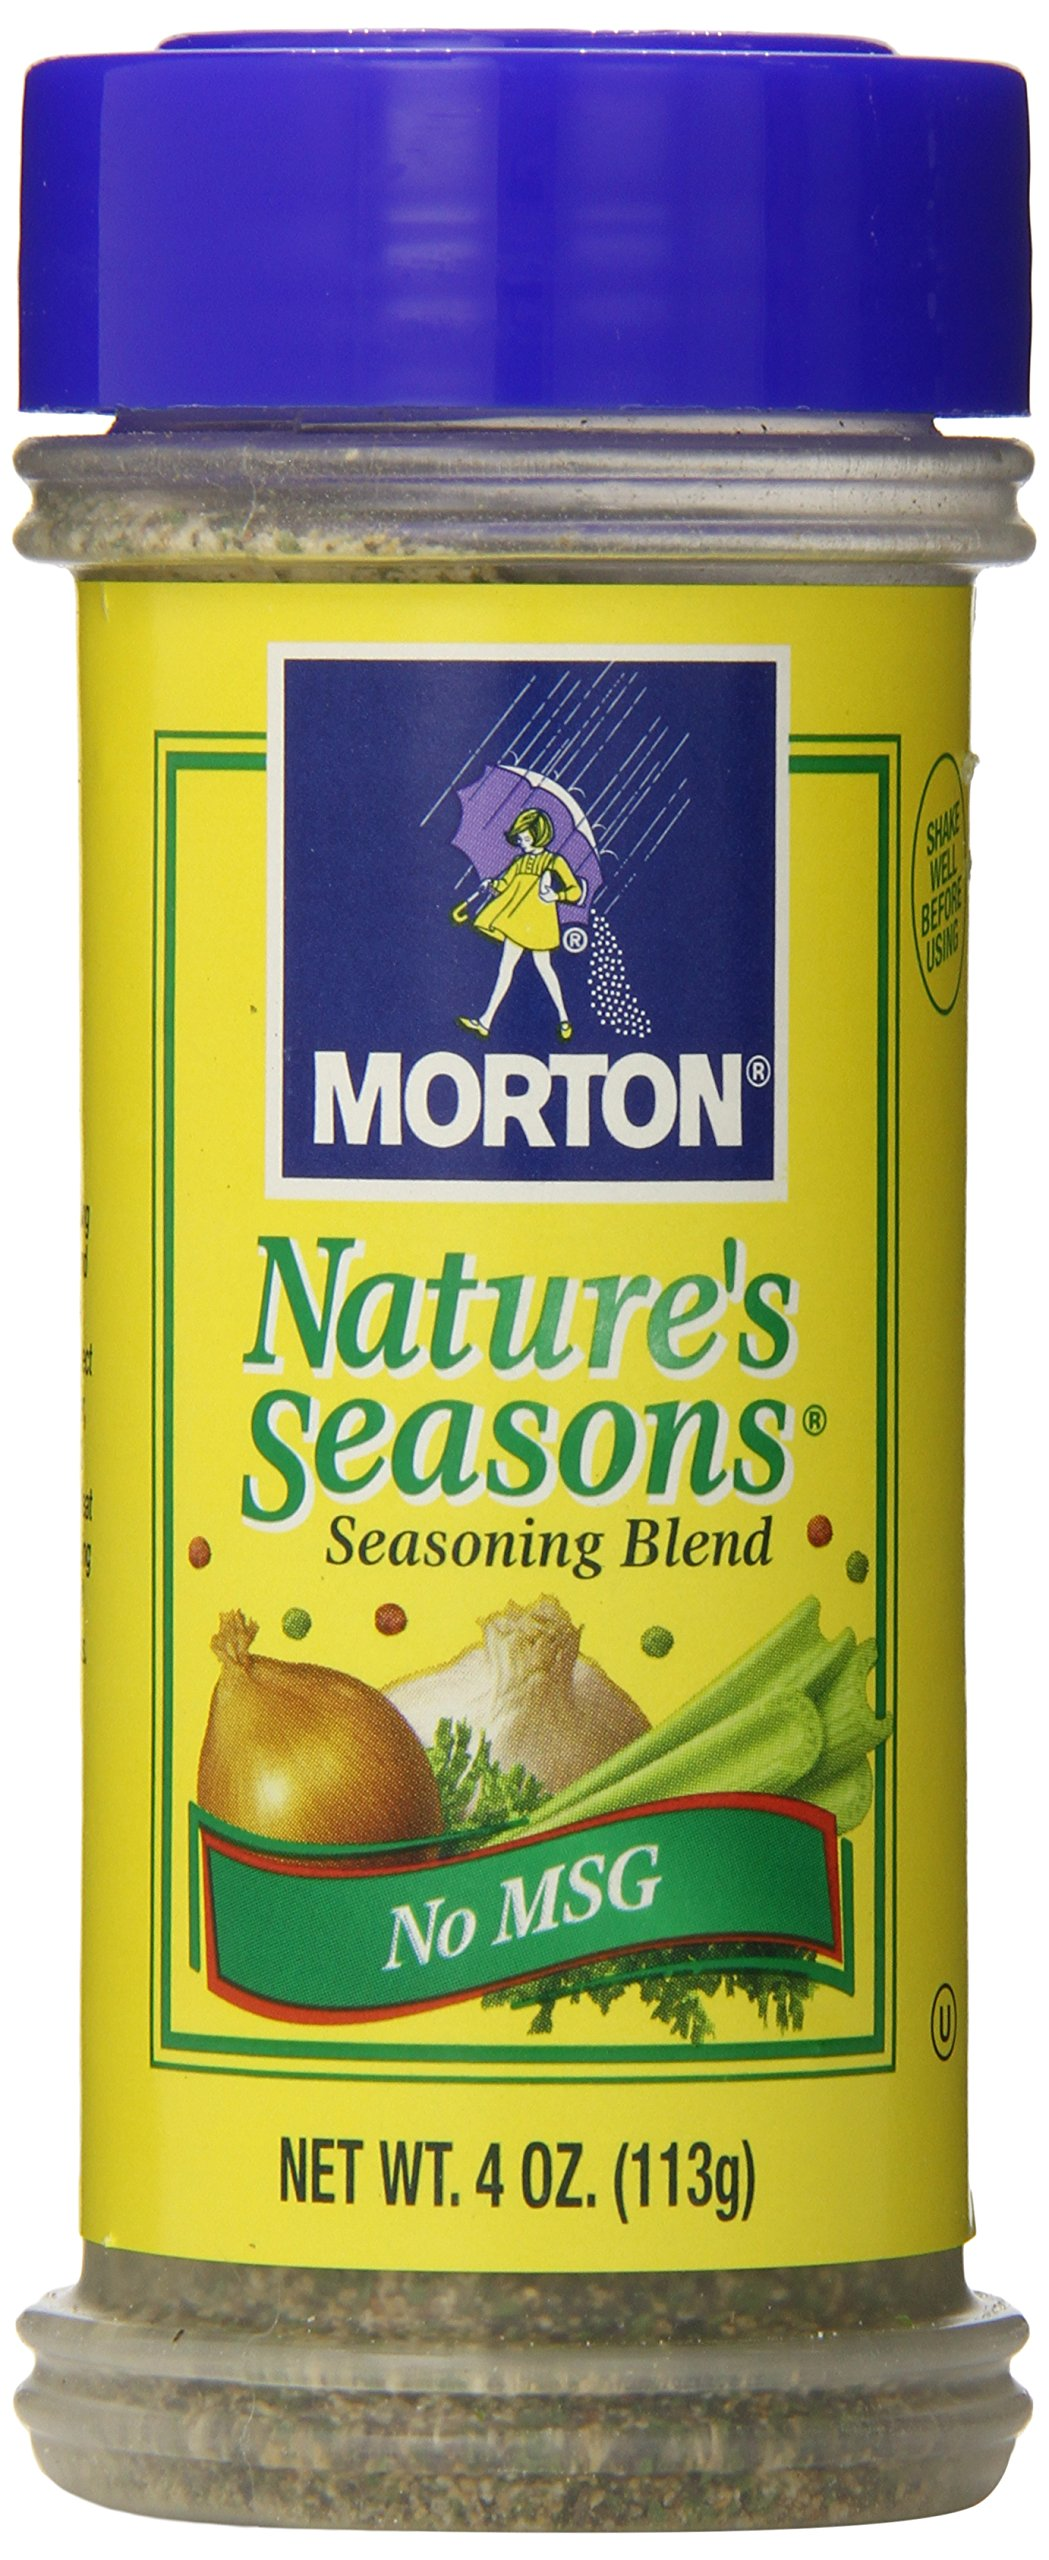 MORTON Nature's Seasons Seasoning Blend, No MSG, Great Steak Seasoning, Savory Blend of Spices, Perfect for Chicken, Fish, Vegetables, Pasta & Salads, 4 Ounce (Pack of 12) by Morton